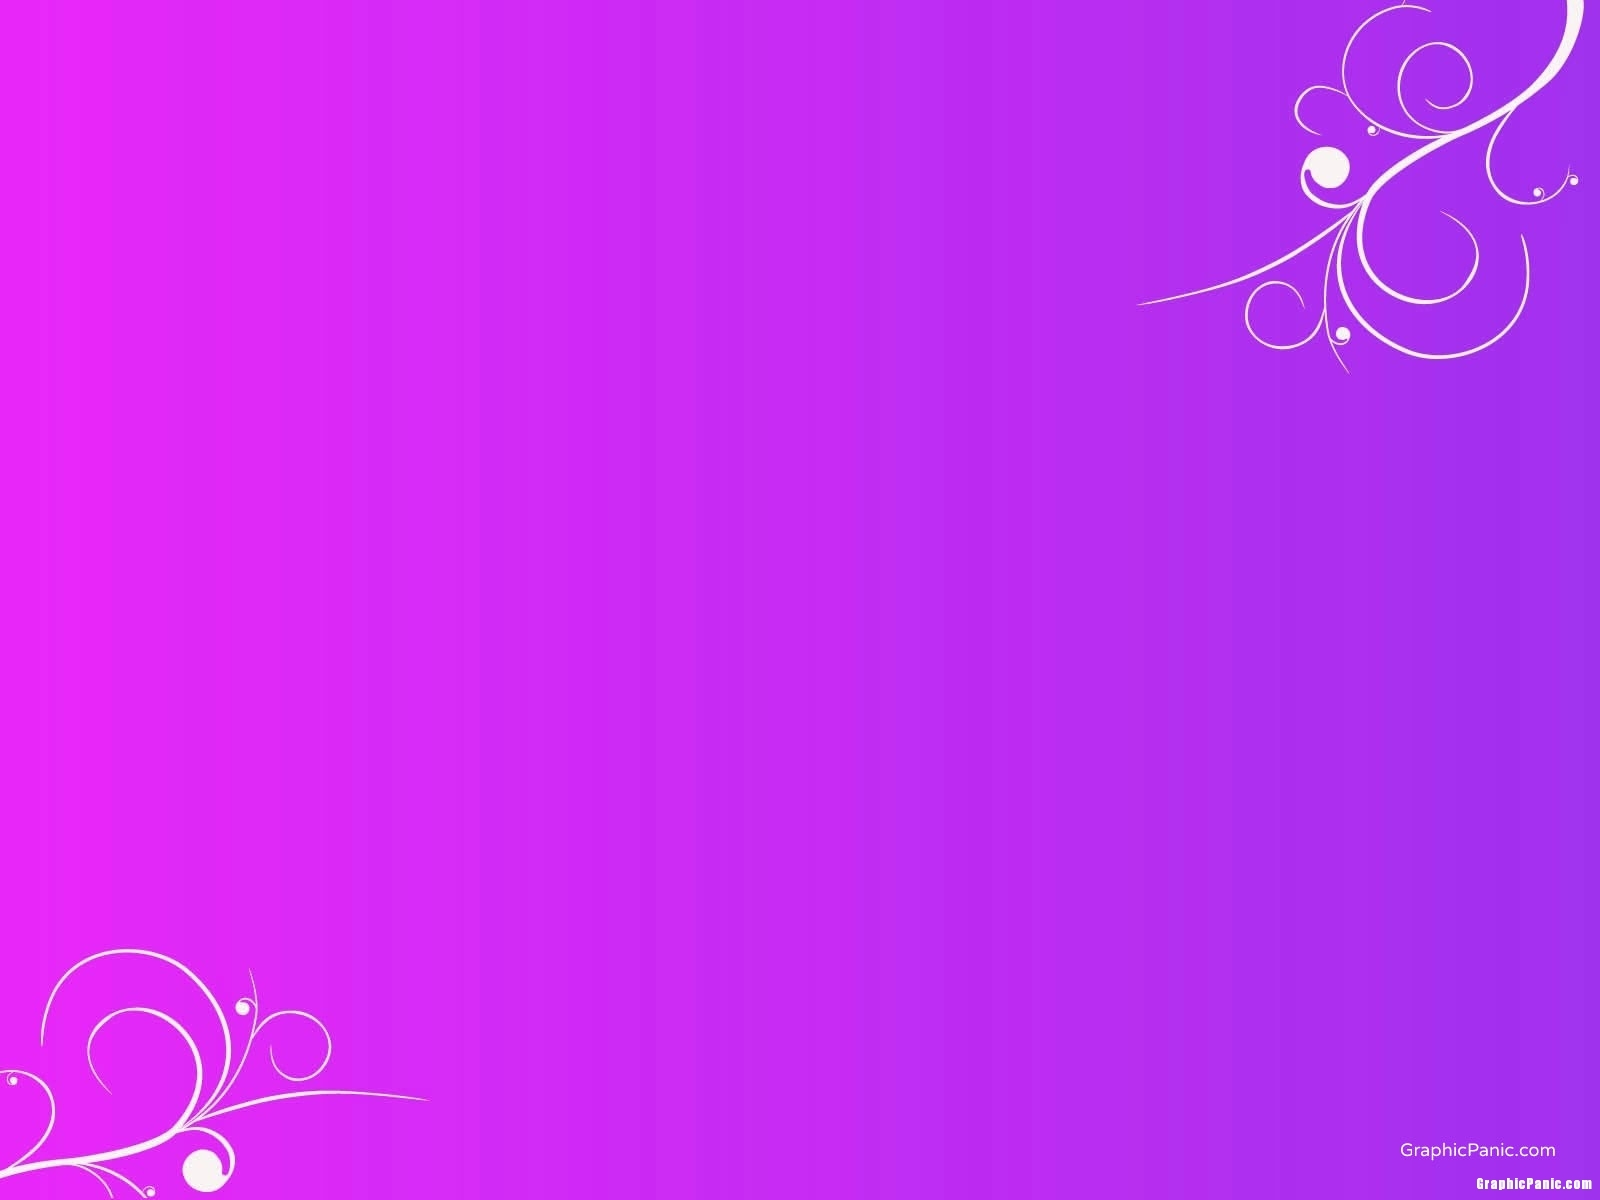 flower-powerpoint-background